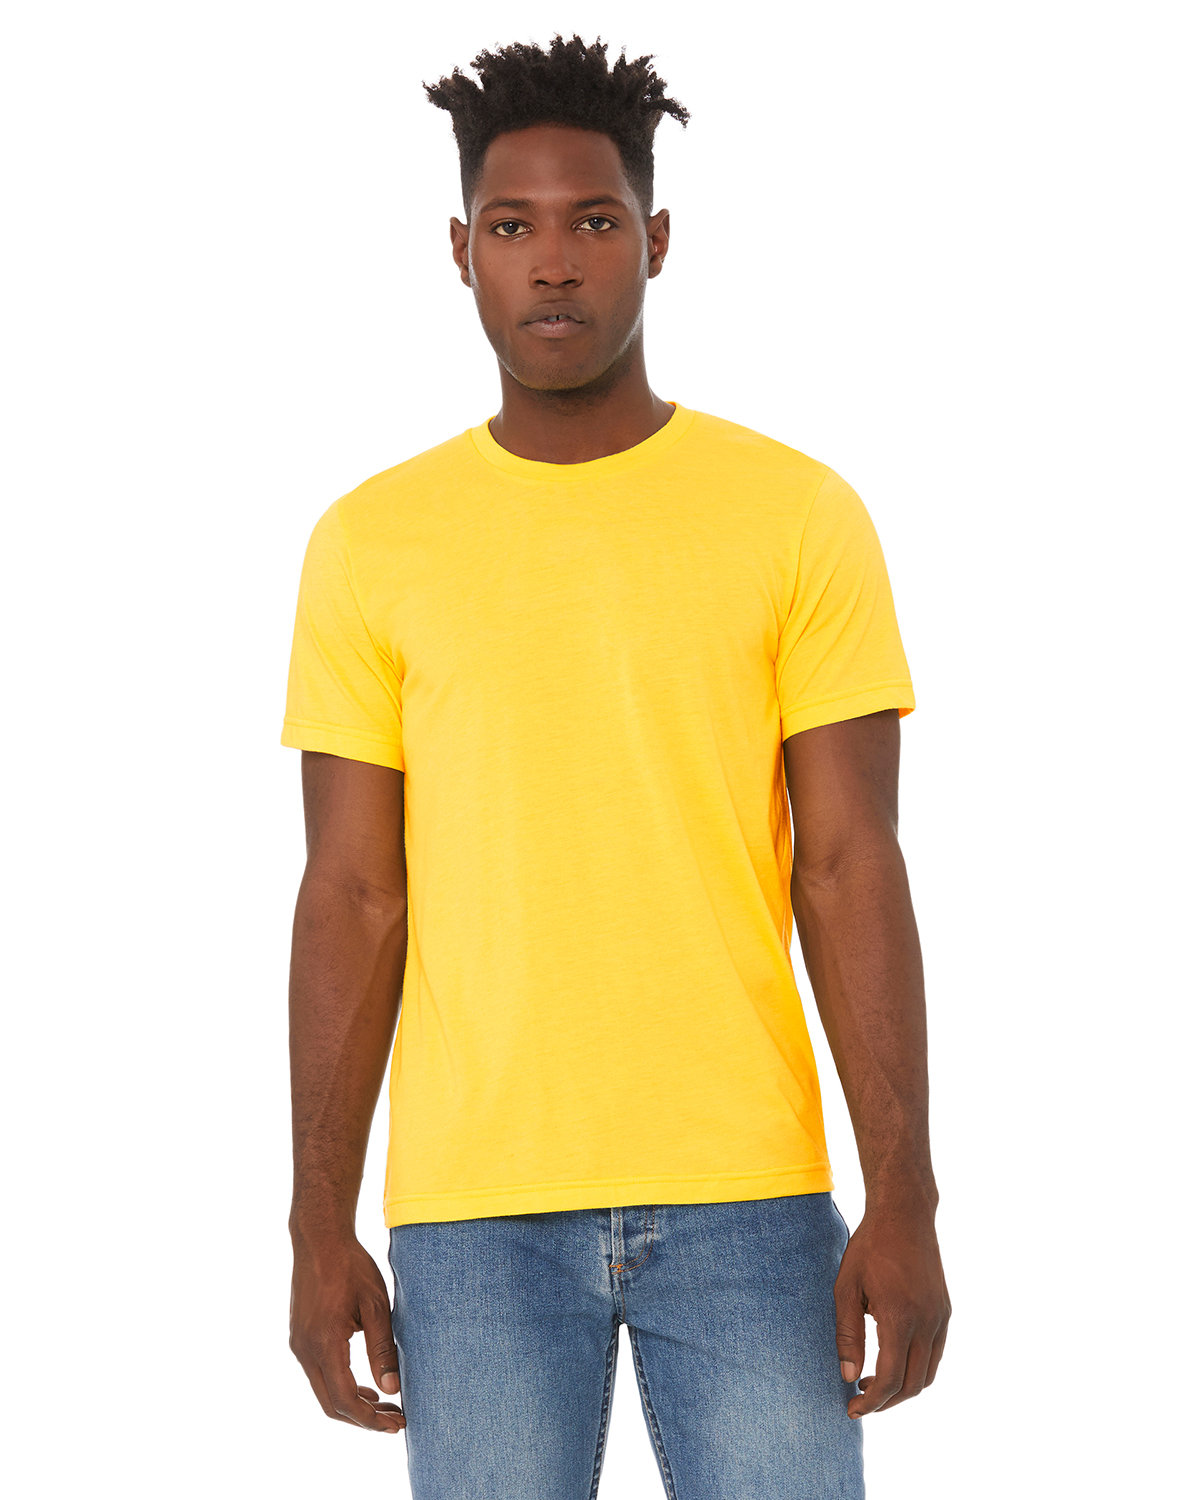 Bella + Canvas Unisex Heather CVC T-Shirt HEATHER YELLOW